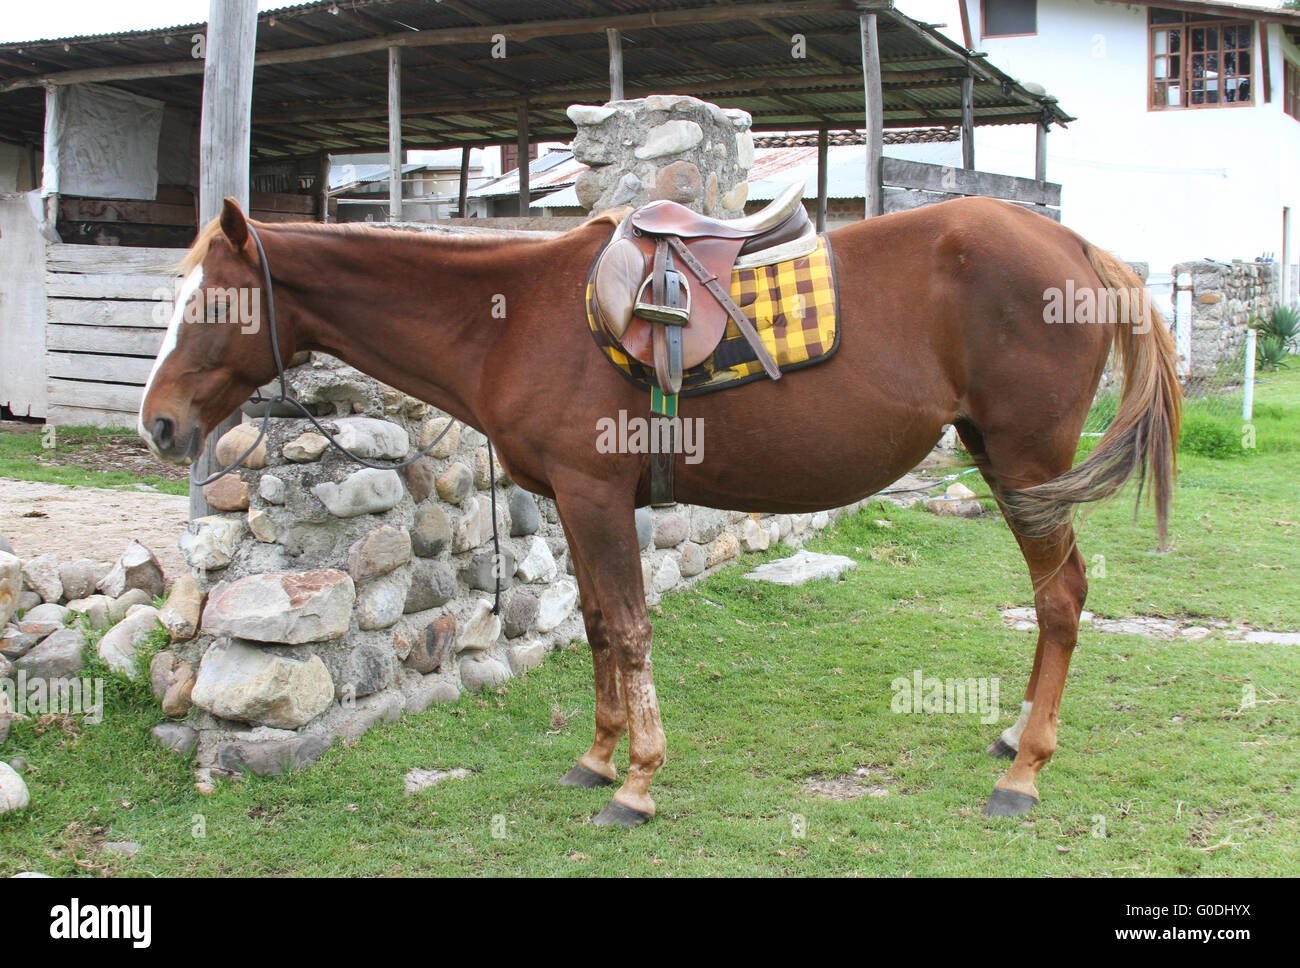 Horse being saddled up to ride English style - Stock Image